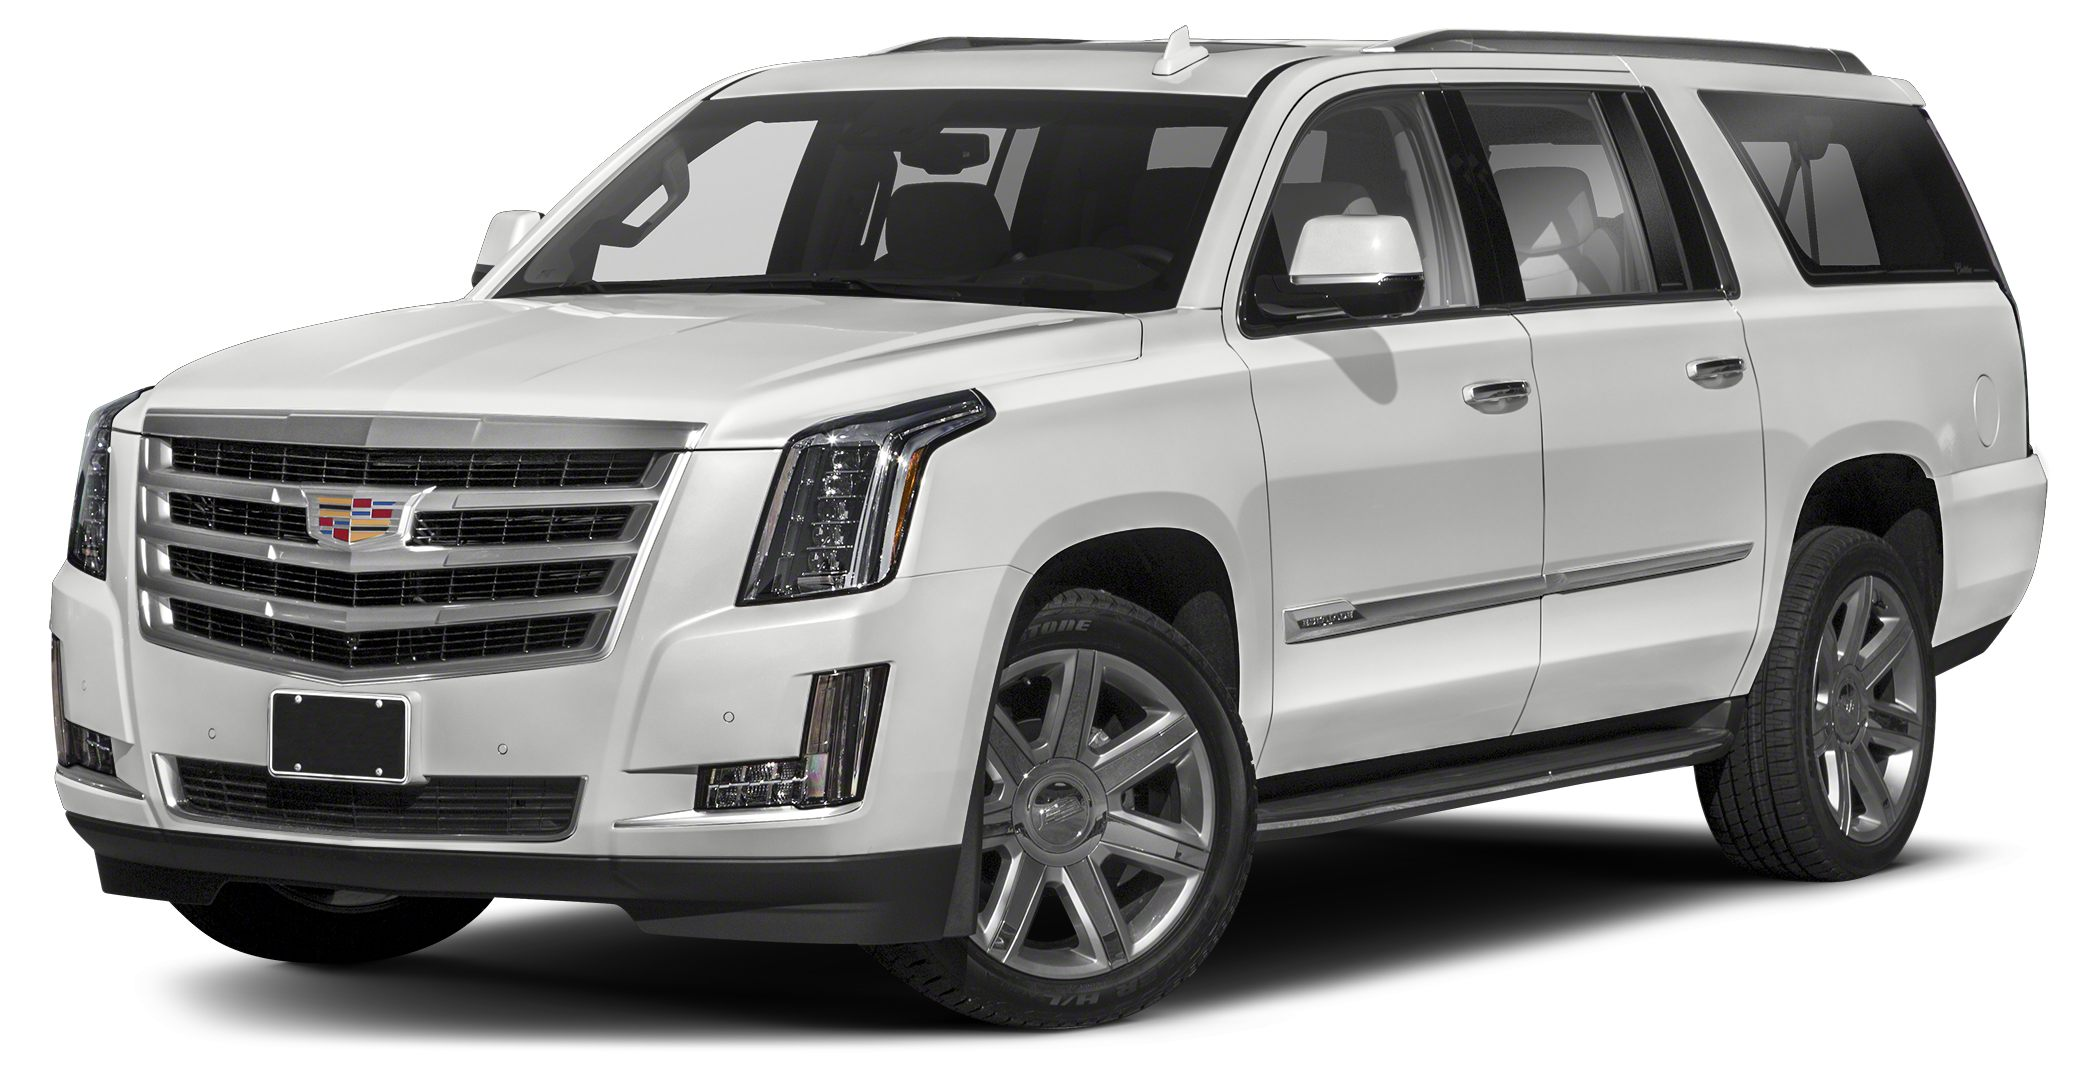 2017 Cadillac Escalade ESV Base Finance Offers based on MSRP2017 Cadillac Escalade ESV 4x2 financ